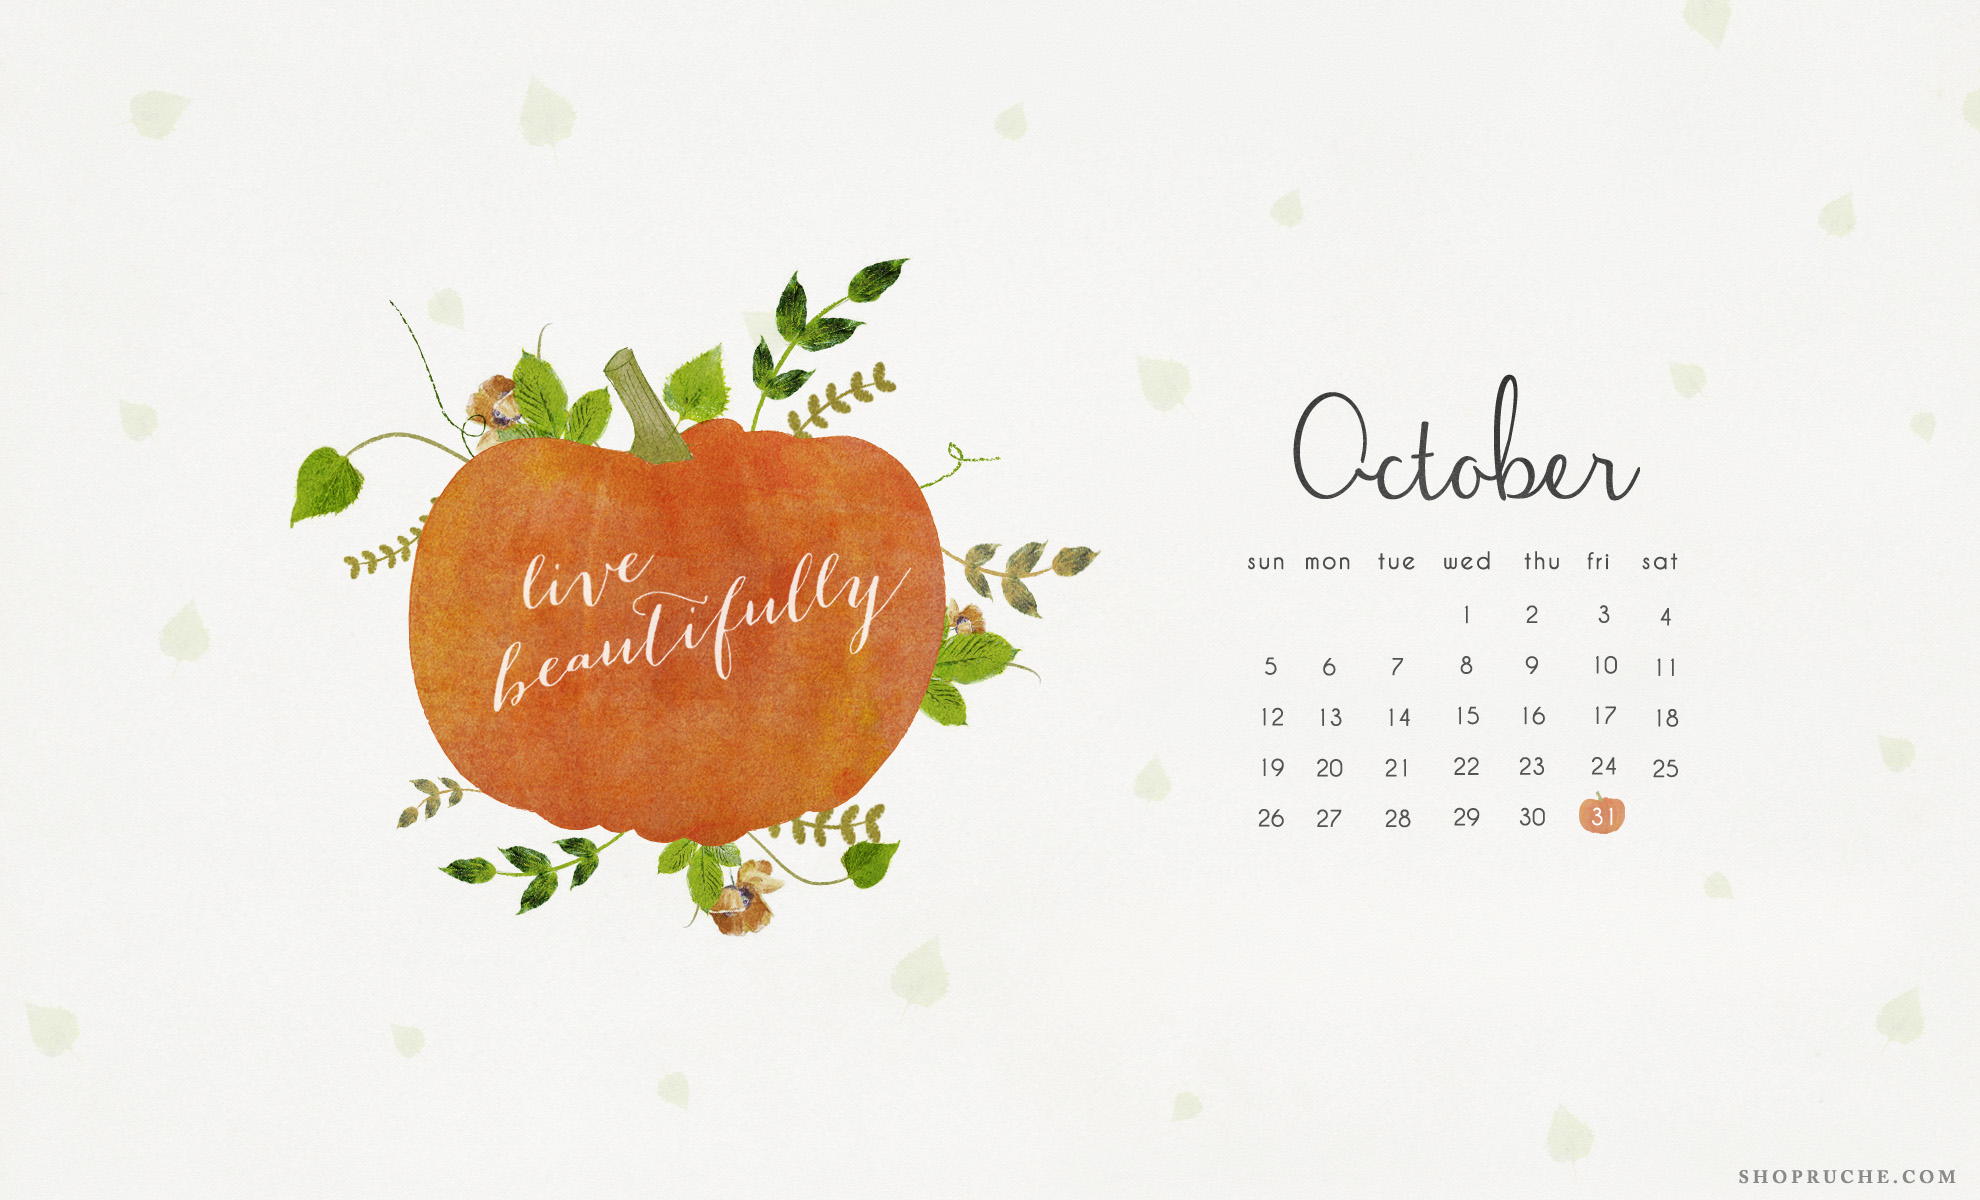 Tumblr Calendar Wallpaper : Computerkleider free desktop wallpaper im oktober